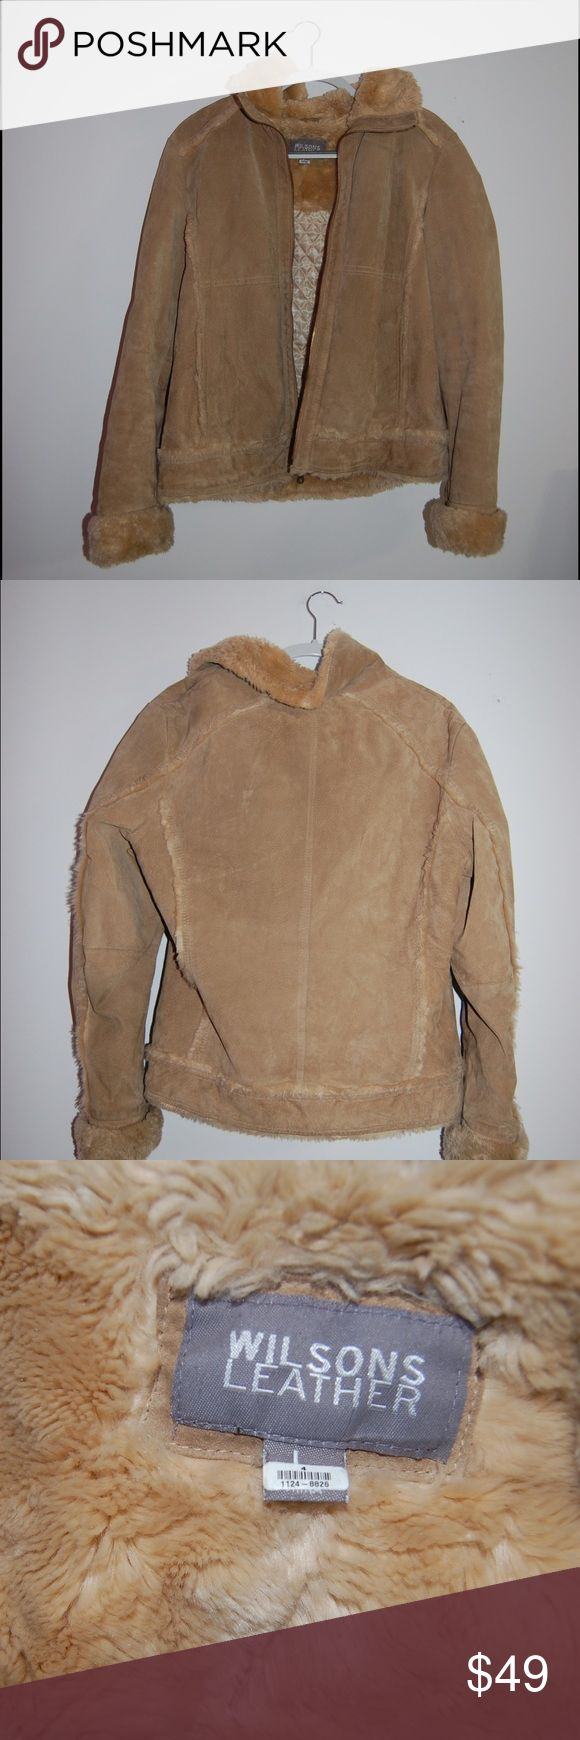 Wilsons leather jacket Good, used condition. Tan. Size 4. Fits like a medium. Wilsons Leather Jackets & Coats